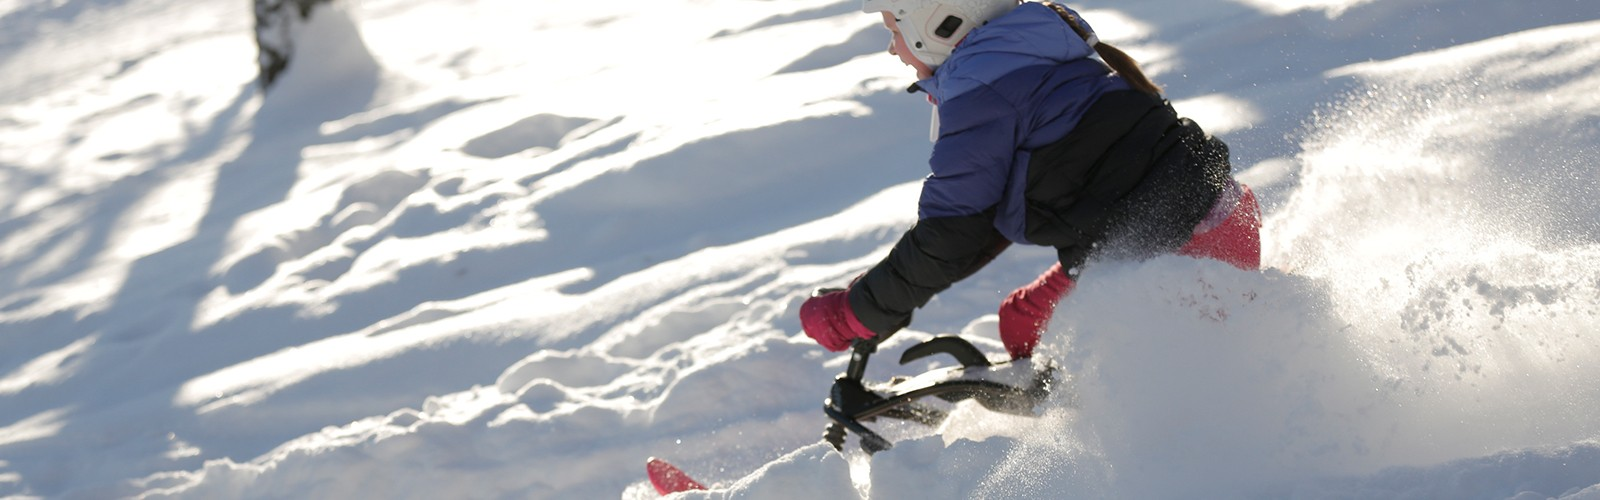 Hamax snow sledges children having fun